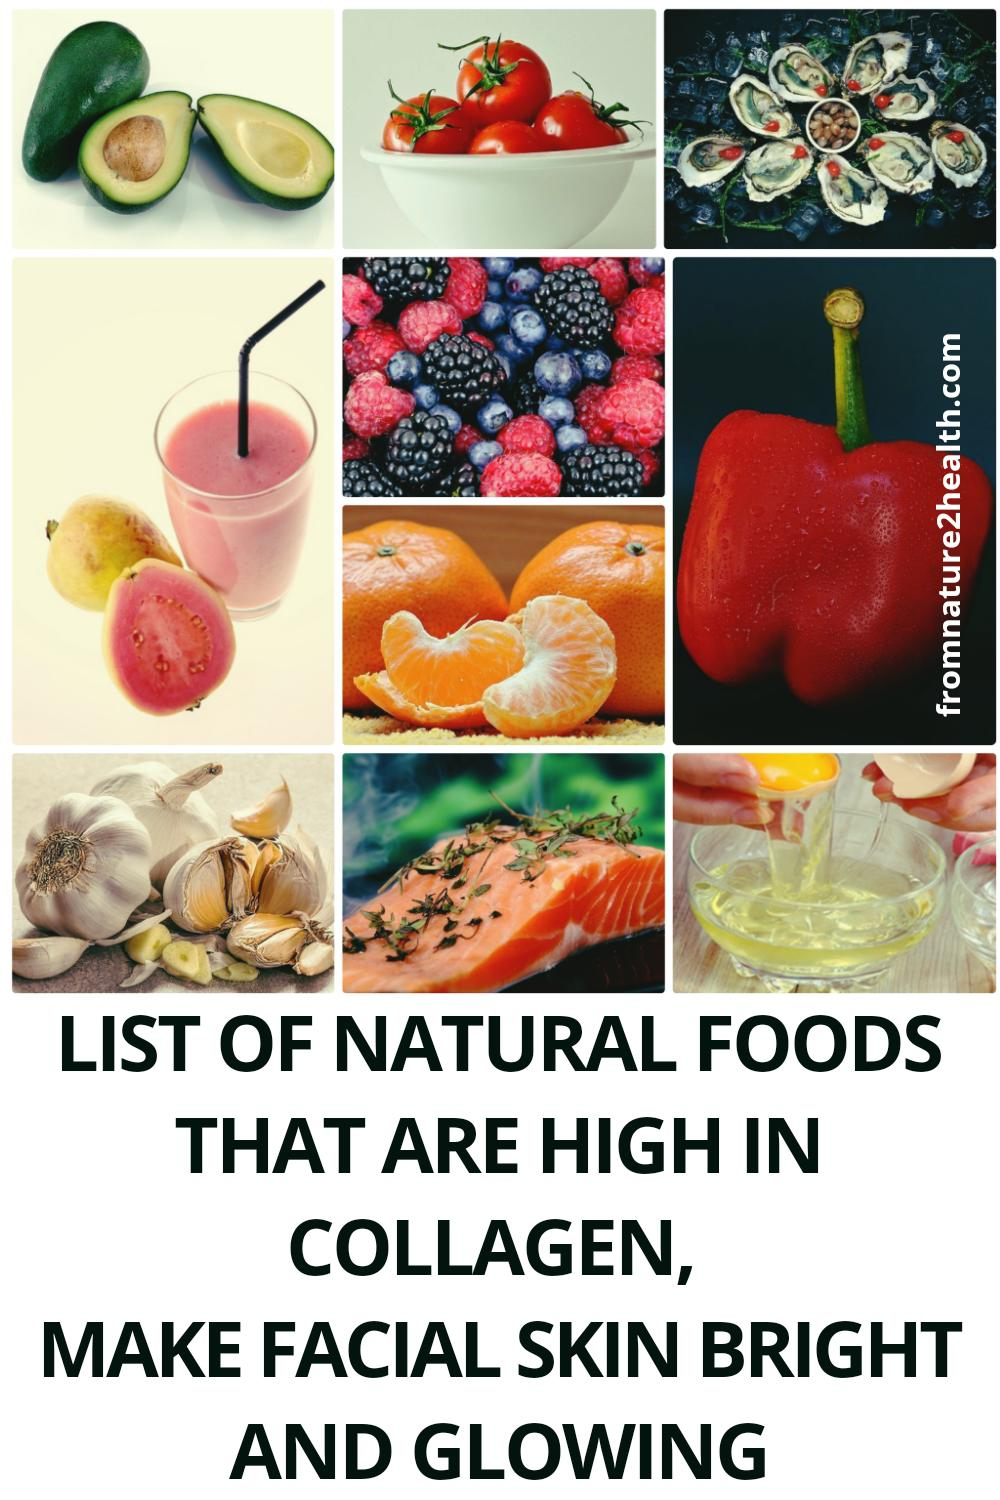 List of Natural Foods that are High in Collagen, Make Facial Skin Bright and Glowing